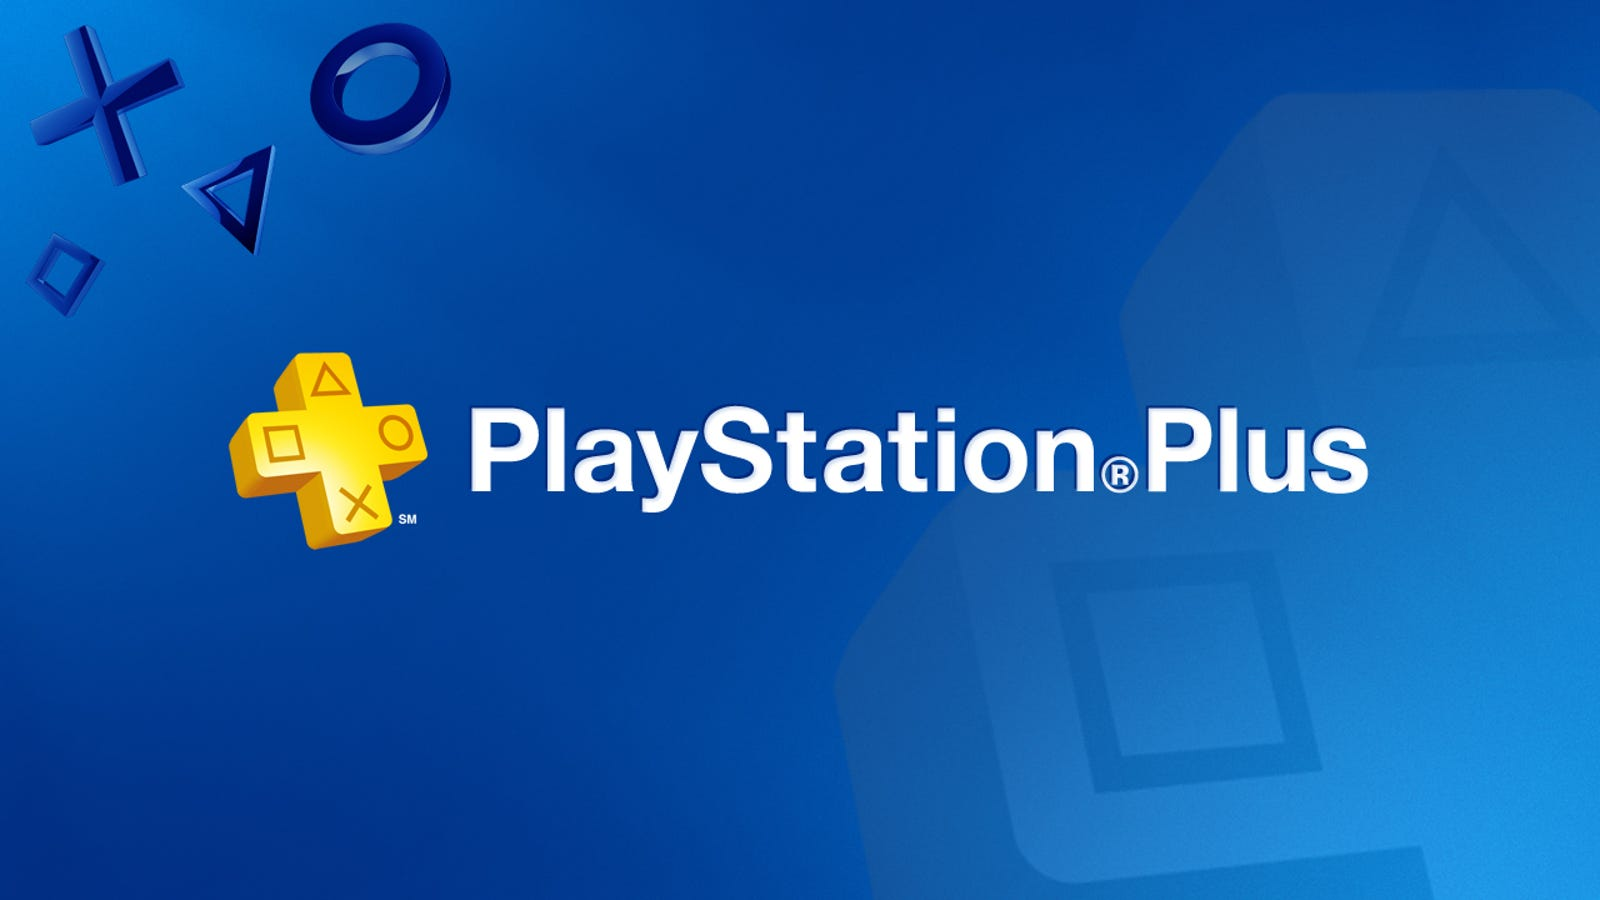 Add A Year To Your Playstation Plus Membership For 40 Network Card 50 Digital Code